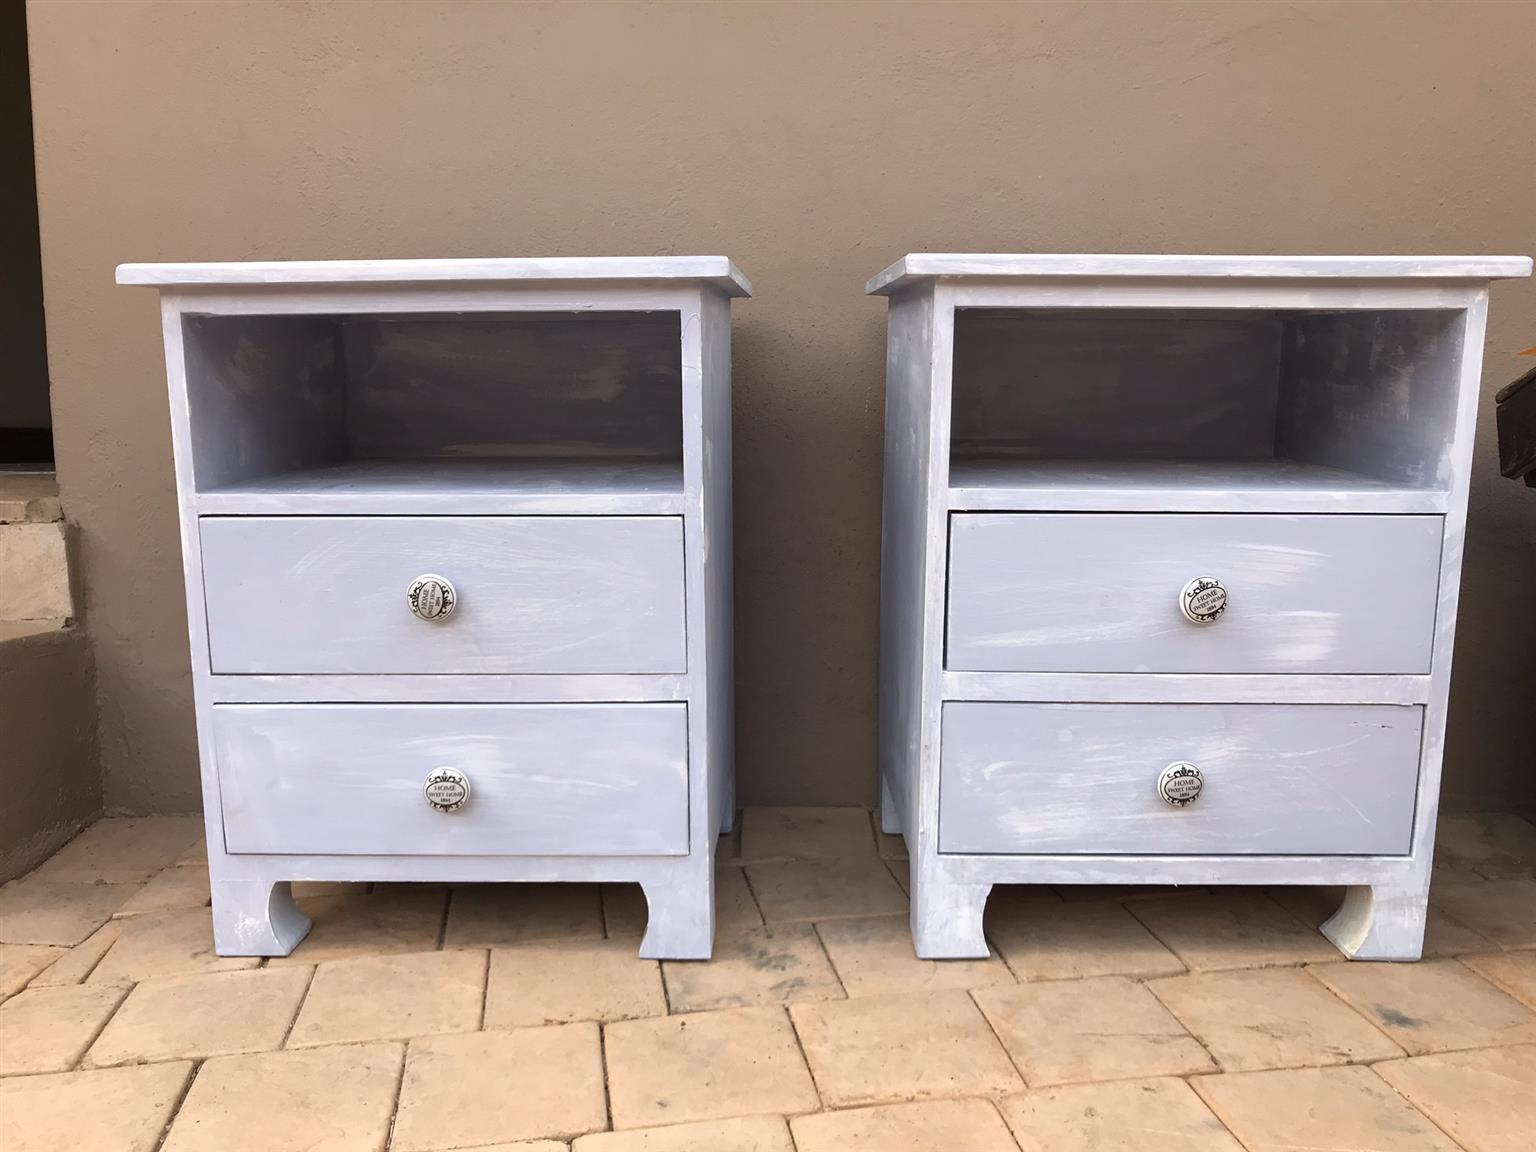 sleigh bed and side tables in soft blue hues